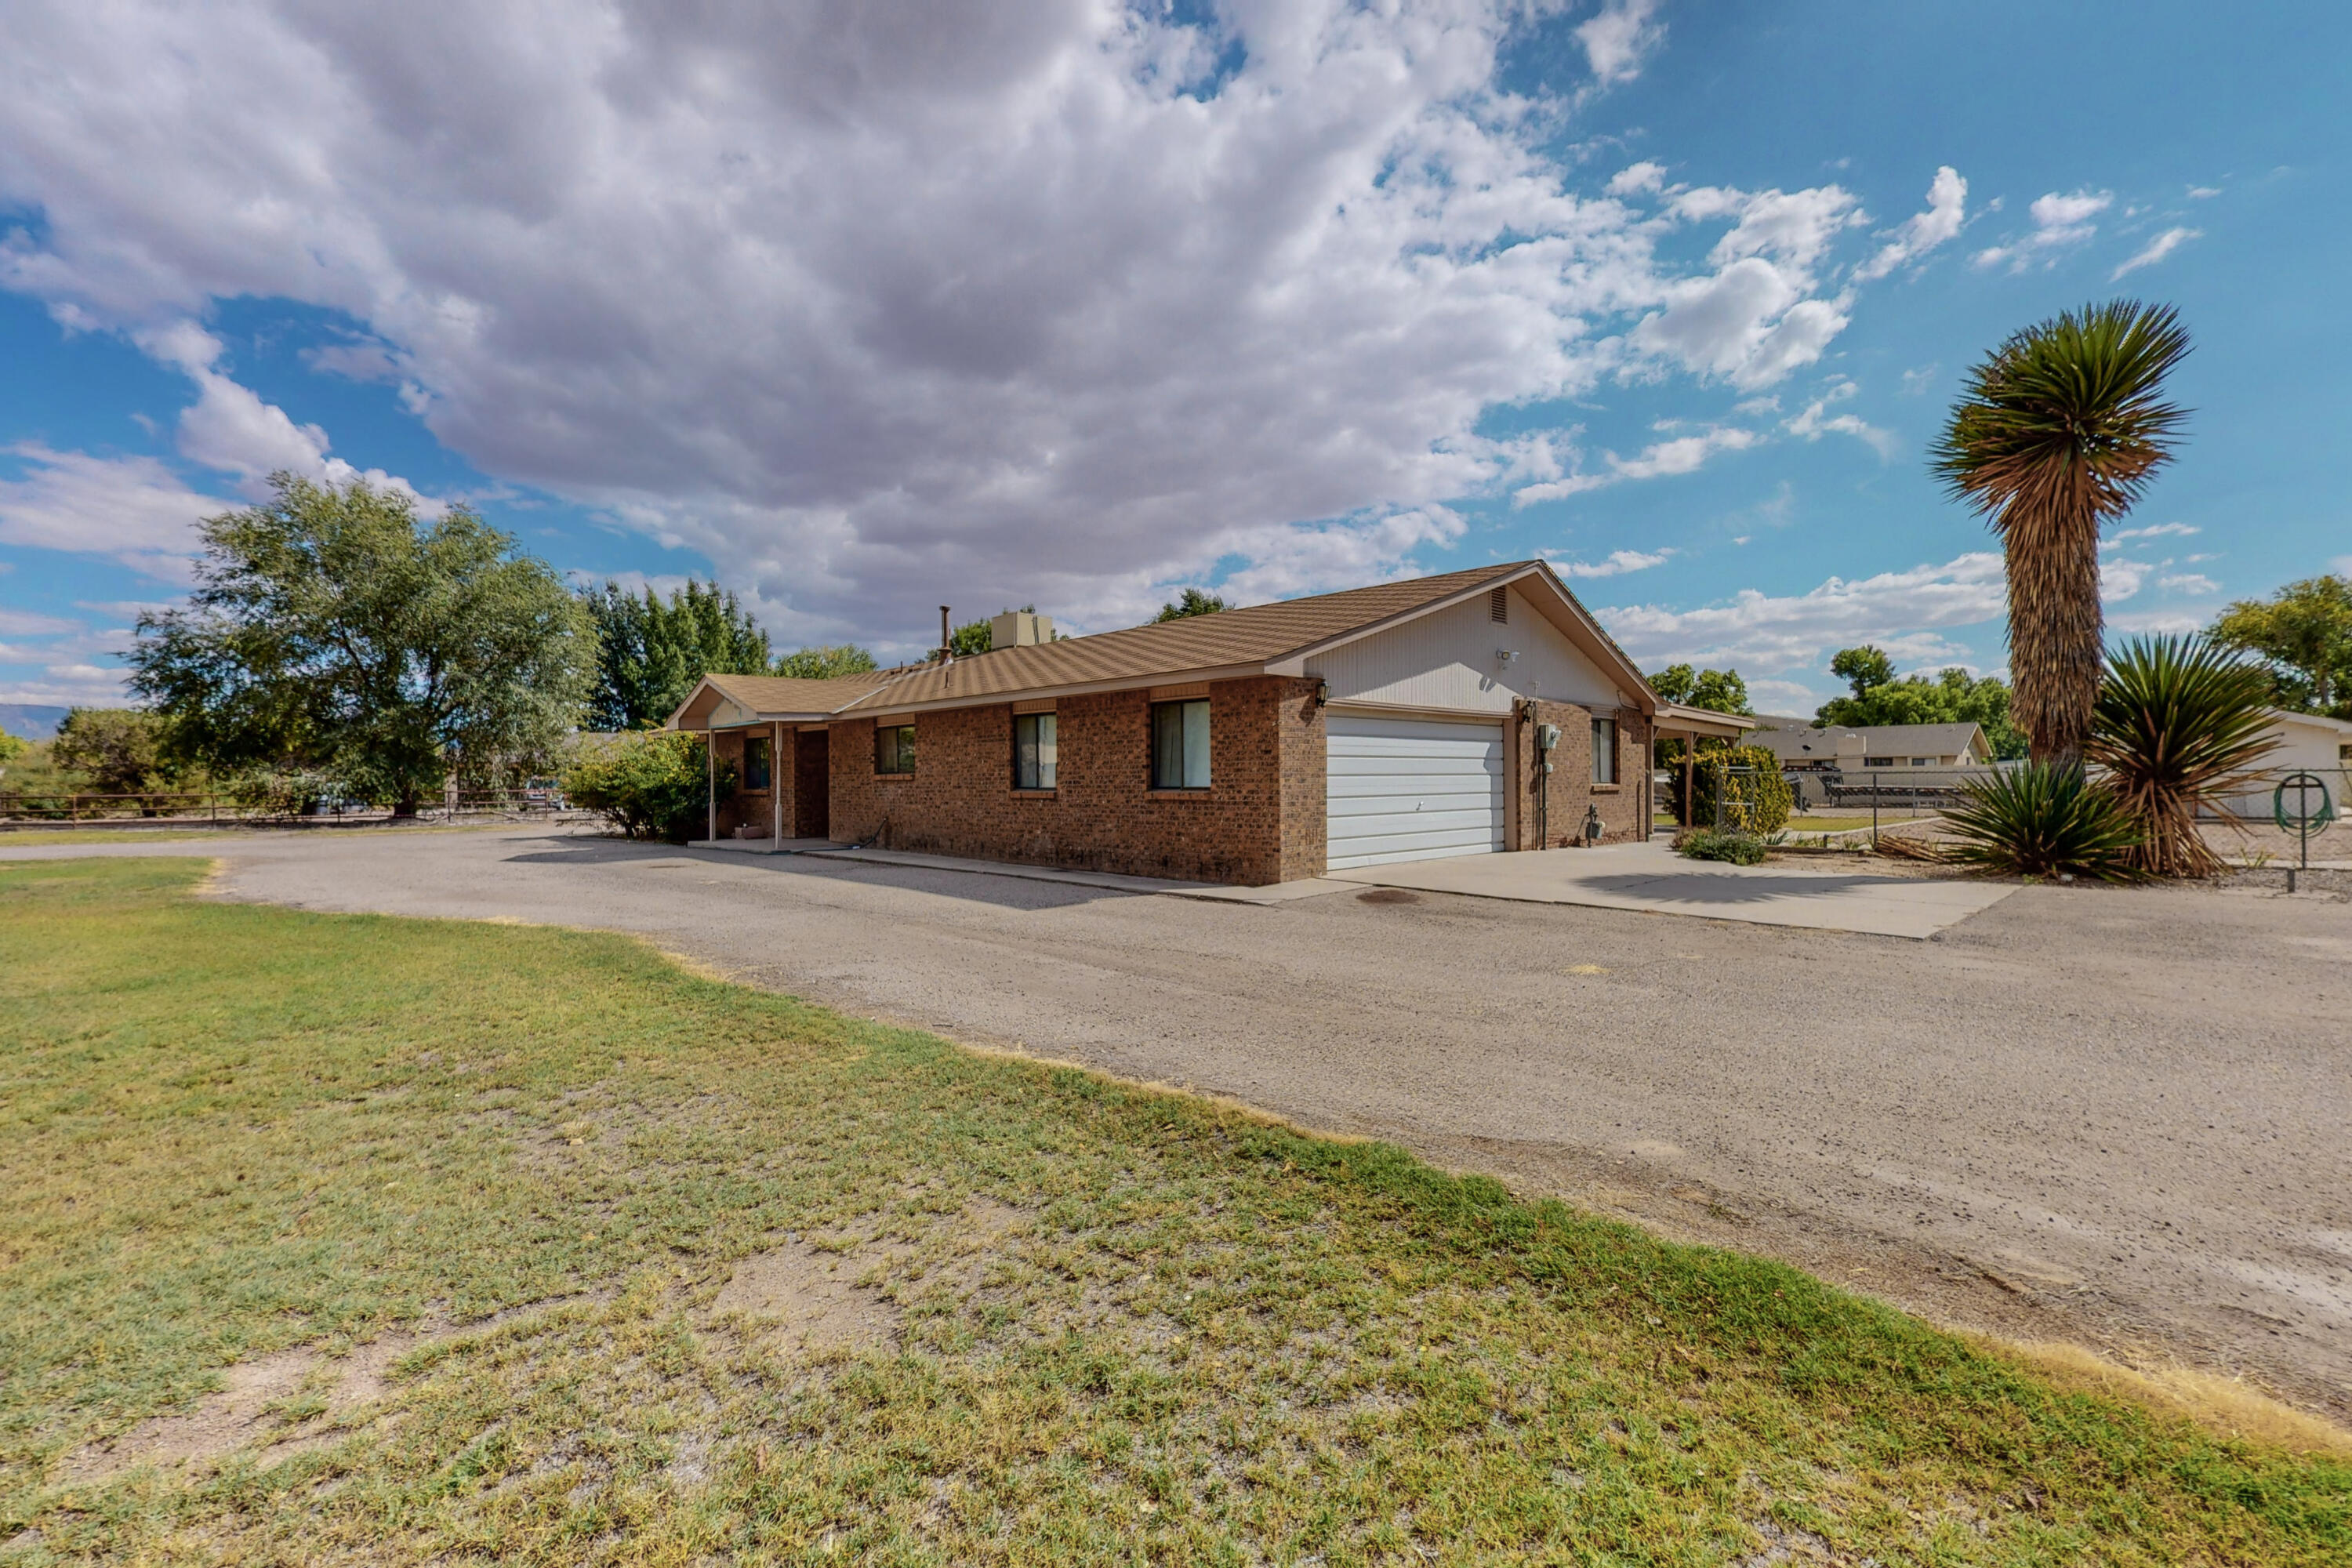 Open house Saturday 10/7 10am-1pm Offers received over the 1st 3 days on market will be reviewed Monday10/10 Nice solid brick veneer home. 3 BR 2BA large living area, office/bonus -room/possible 4th bedroom, large covered porch all on a very large 3/4 acre lot. Renovated kitchen with concrete counter tops and new cabinets. New tile in kitchen, living area and hall. Wet bar. Oversized finished garage has built in work bench and selves.  Backyard access at 2 points, RV parking possible, designated garden area, fruit trees, storage building, corner lot. This home has huge potential for the person looking to upgrade to something very nice. Come and see!